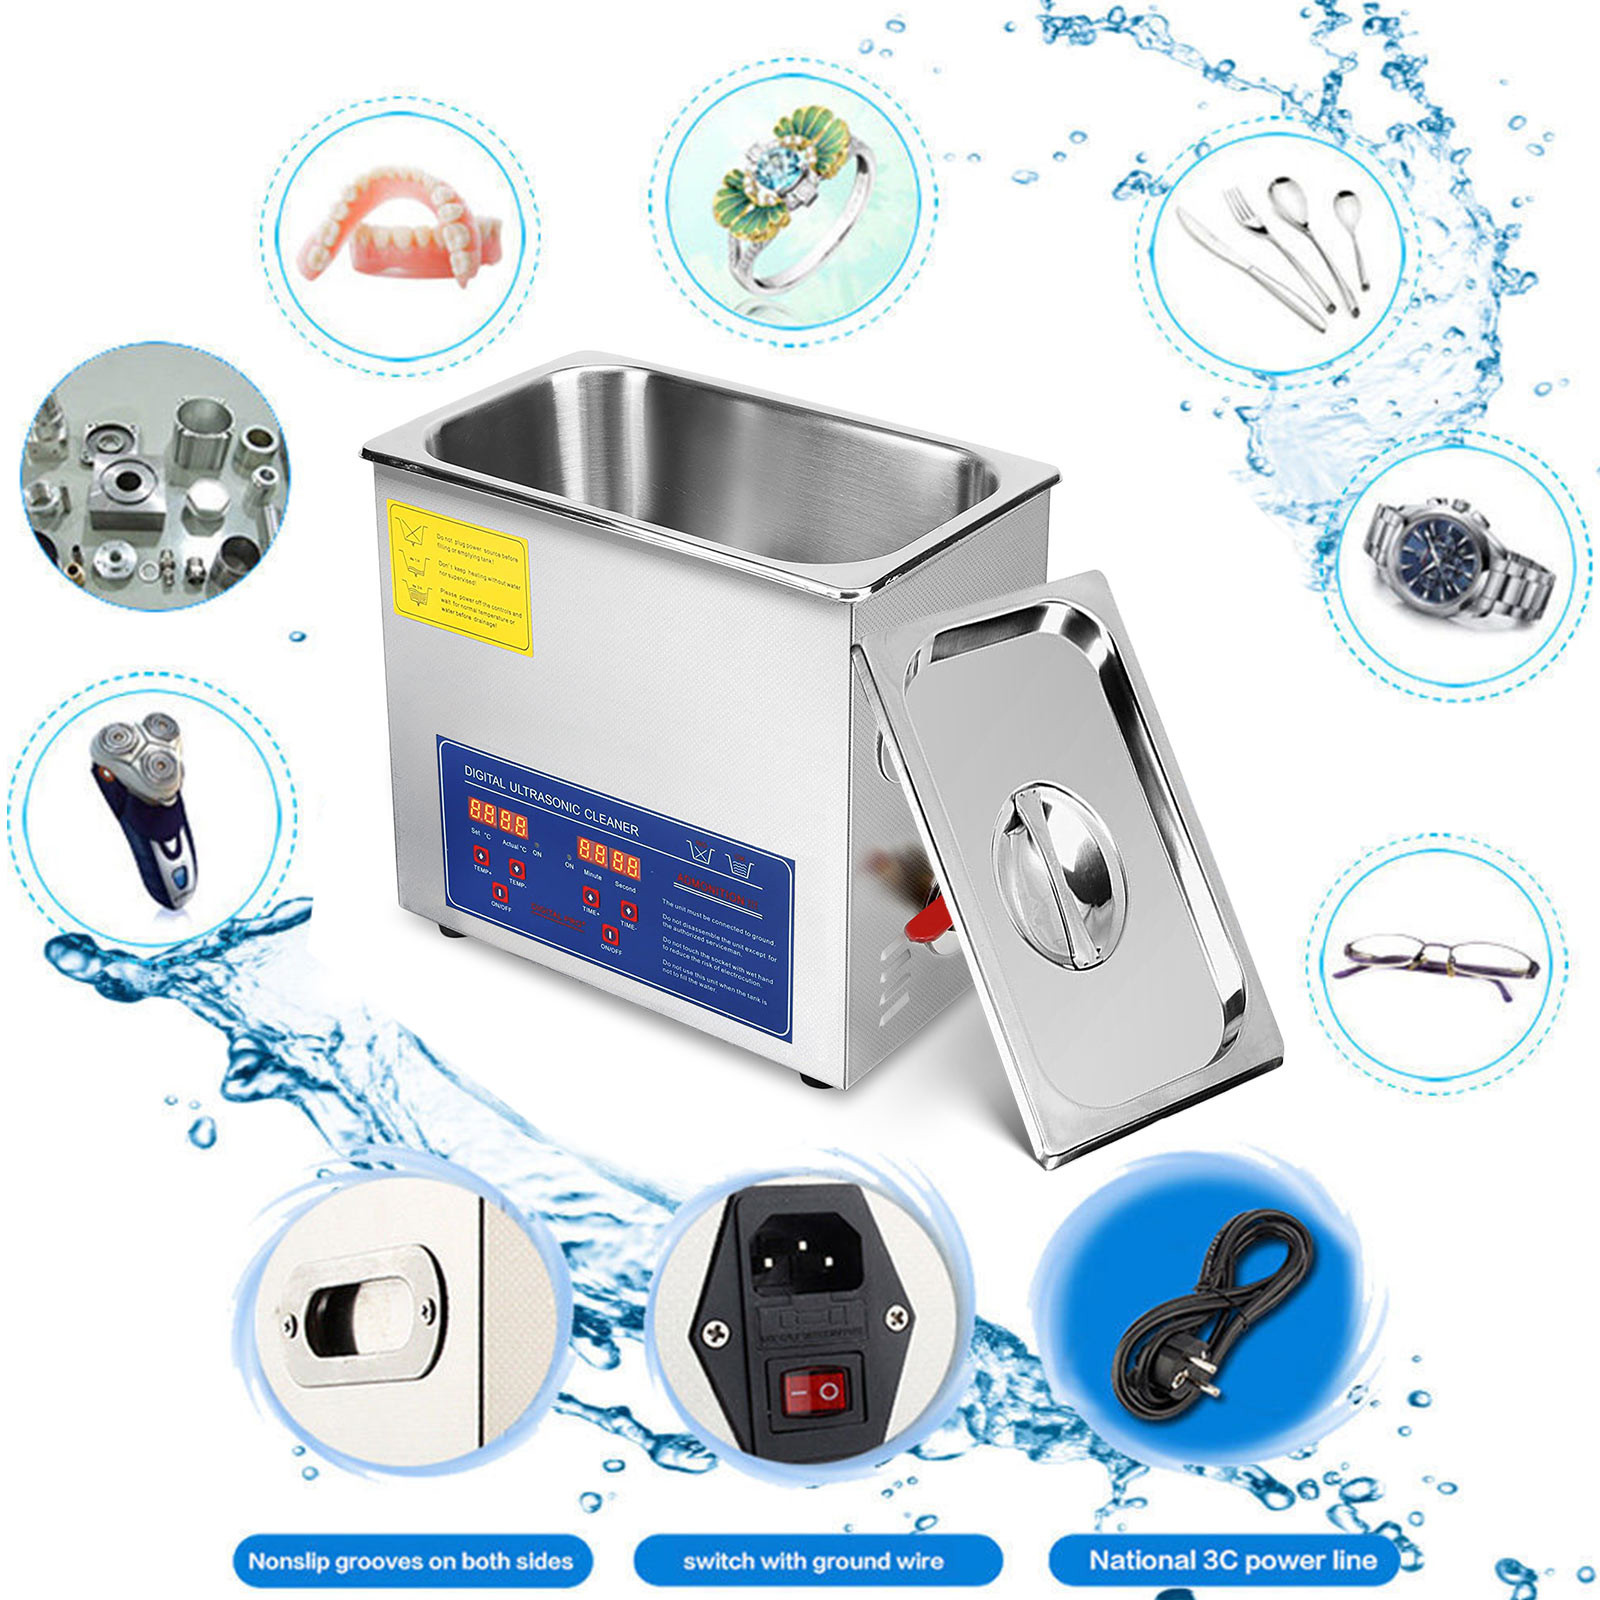 Multi-Ultrasonic-Cleaner-Supplies-Jewelry-1-3-2L-3L-6L-10L-15L-22L-30L thumbnail 70